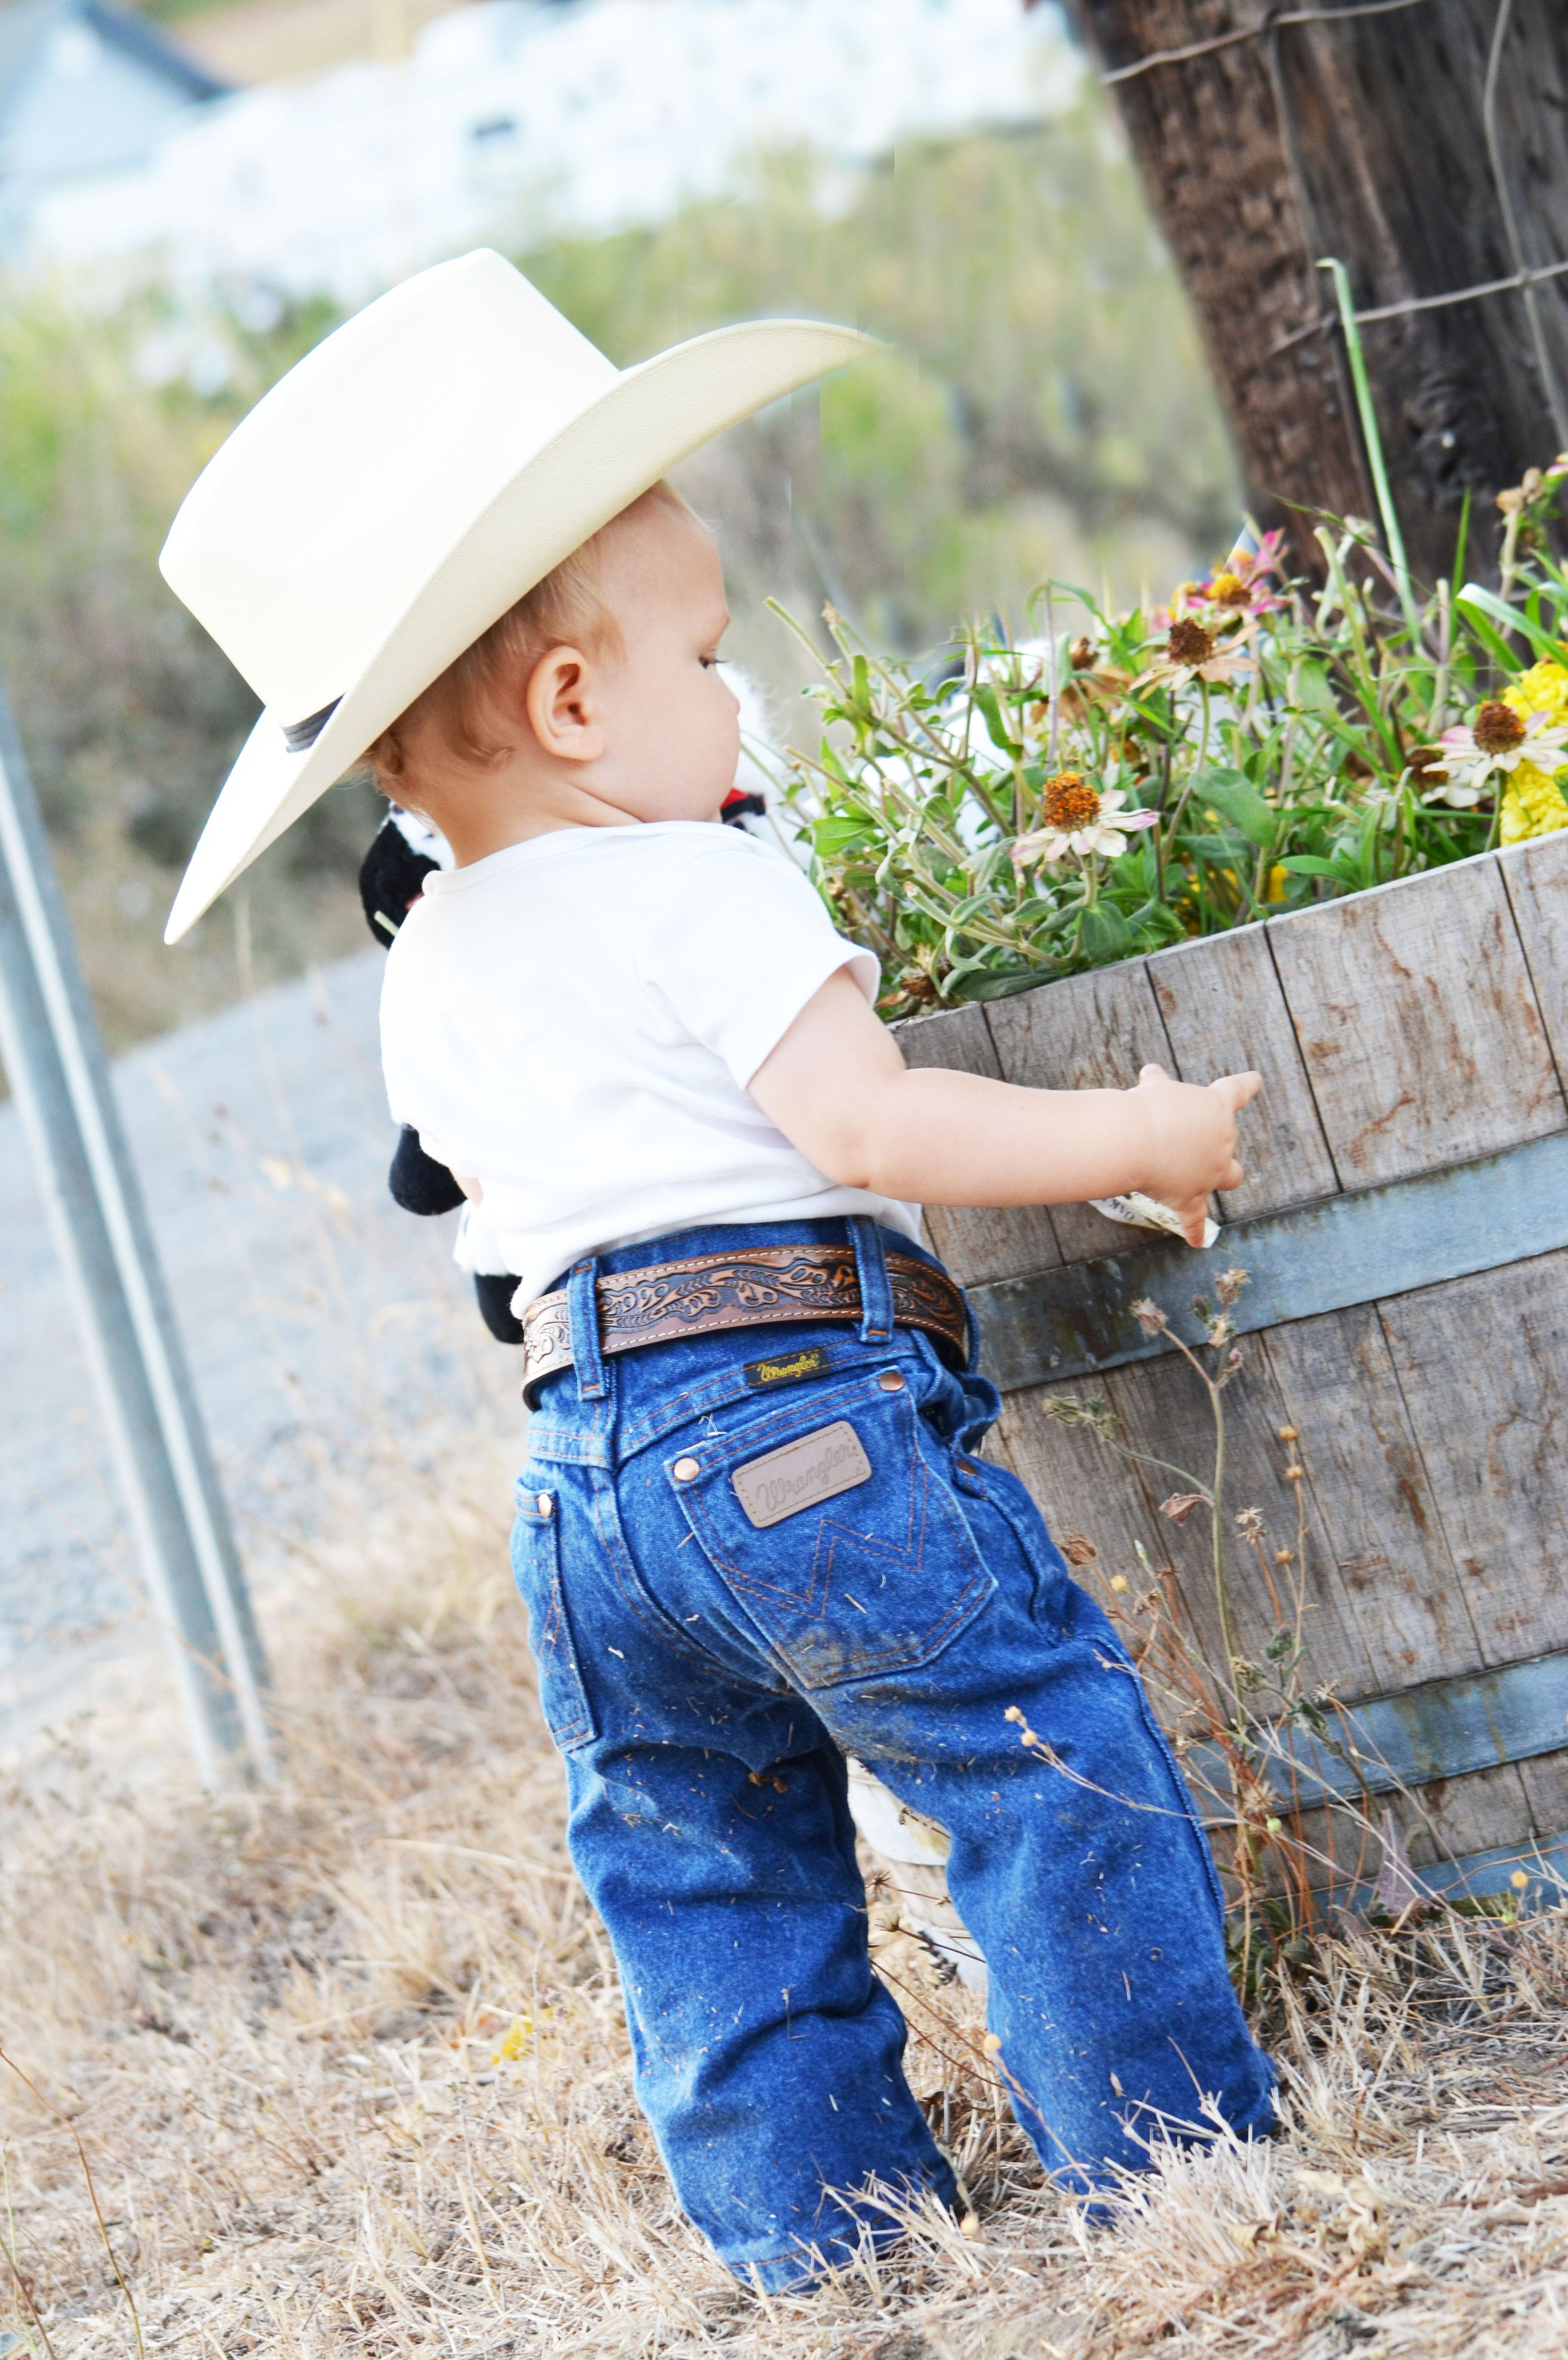 37 best kiddo and his pony images on Pinterest